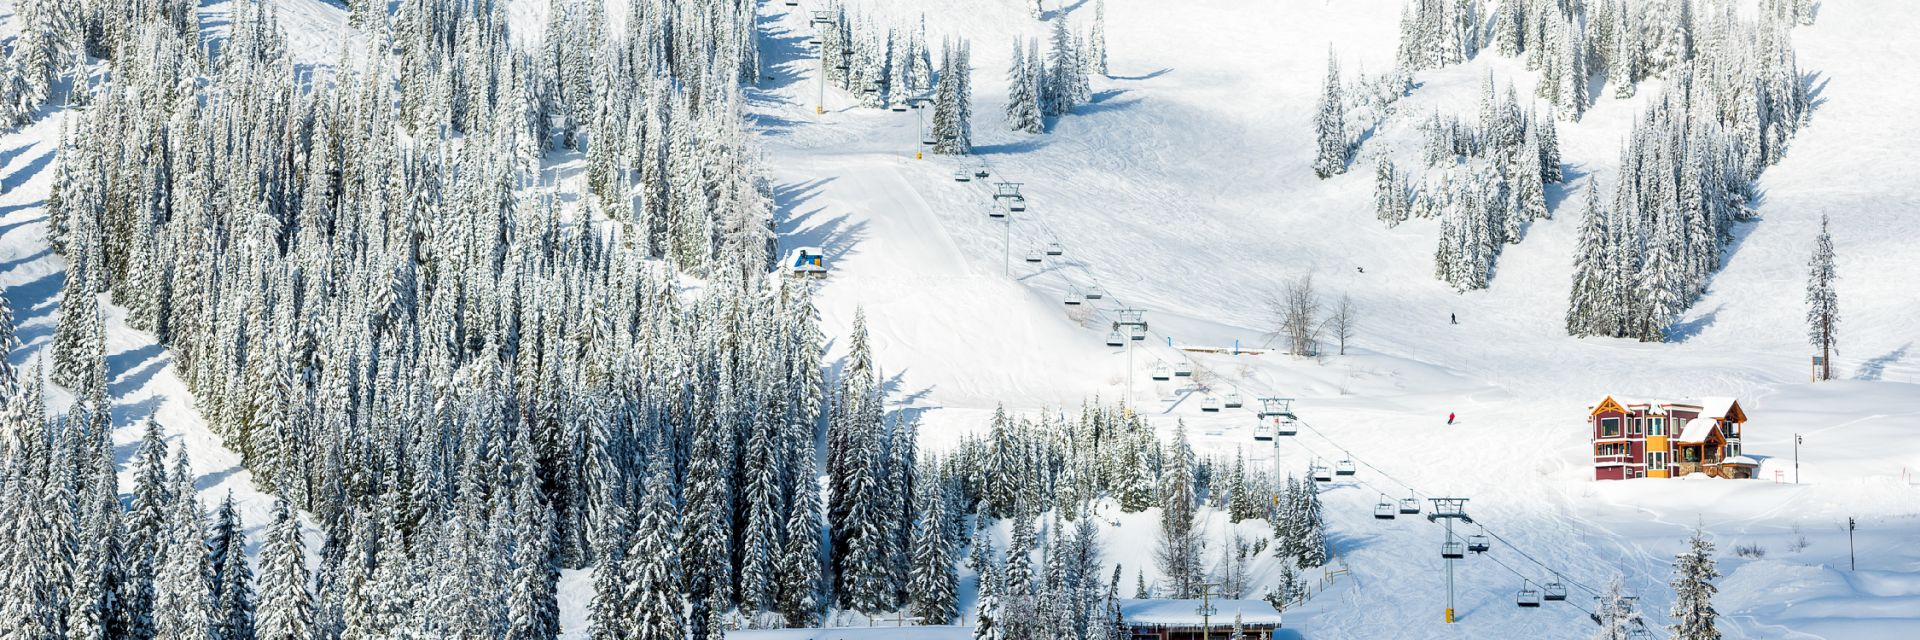 A ski resort in British Columbia